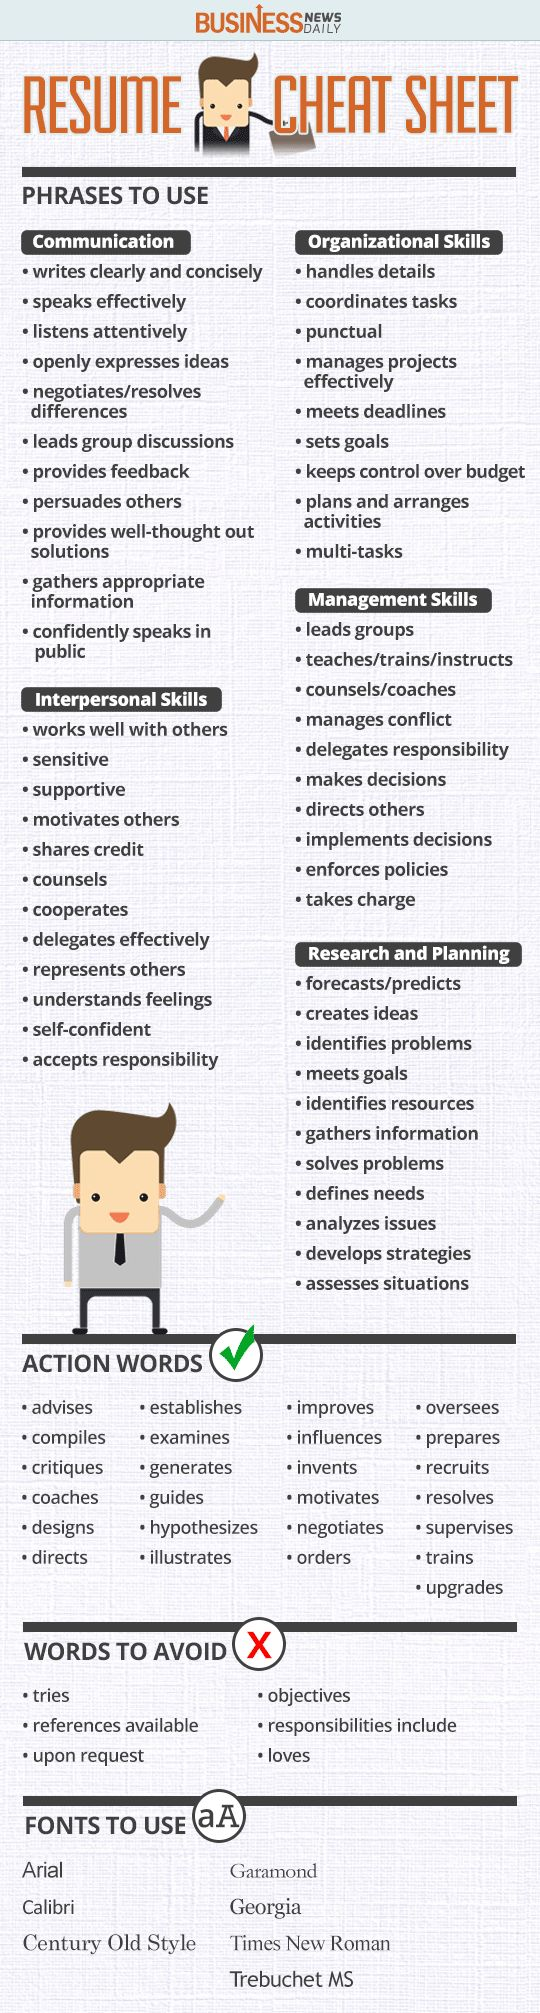 Opposenewapstandardsus  Picturesque  Ideas About Resume On Pinterest  Cv Format Resume  With Gorgeous Resume Cheat Sheet Infographic Andrews Almost Done With A Complete Unit On Employment Which With Astounding Objective For Cna Resume Also Margins For A Resume In Addition Home Health Care Resume And References Upon Request On Resume As Well As Resume Poem Additionally Resume Education In Progress From Pinterestcom With Opposenewapstandardsus  Gorgeous  Ideas About Resume On Pinterest  Cv Format Resume  With Astounding Resume Cheat Sheet Infographic Andrews Almost Done With A Complete Unit On Employment Which And Picturesque Objective For Cna Resume Also Margins For A Resume In Addition Home Health Care Resume From Pinterestcom